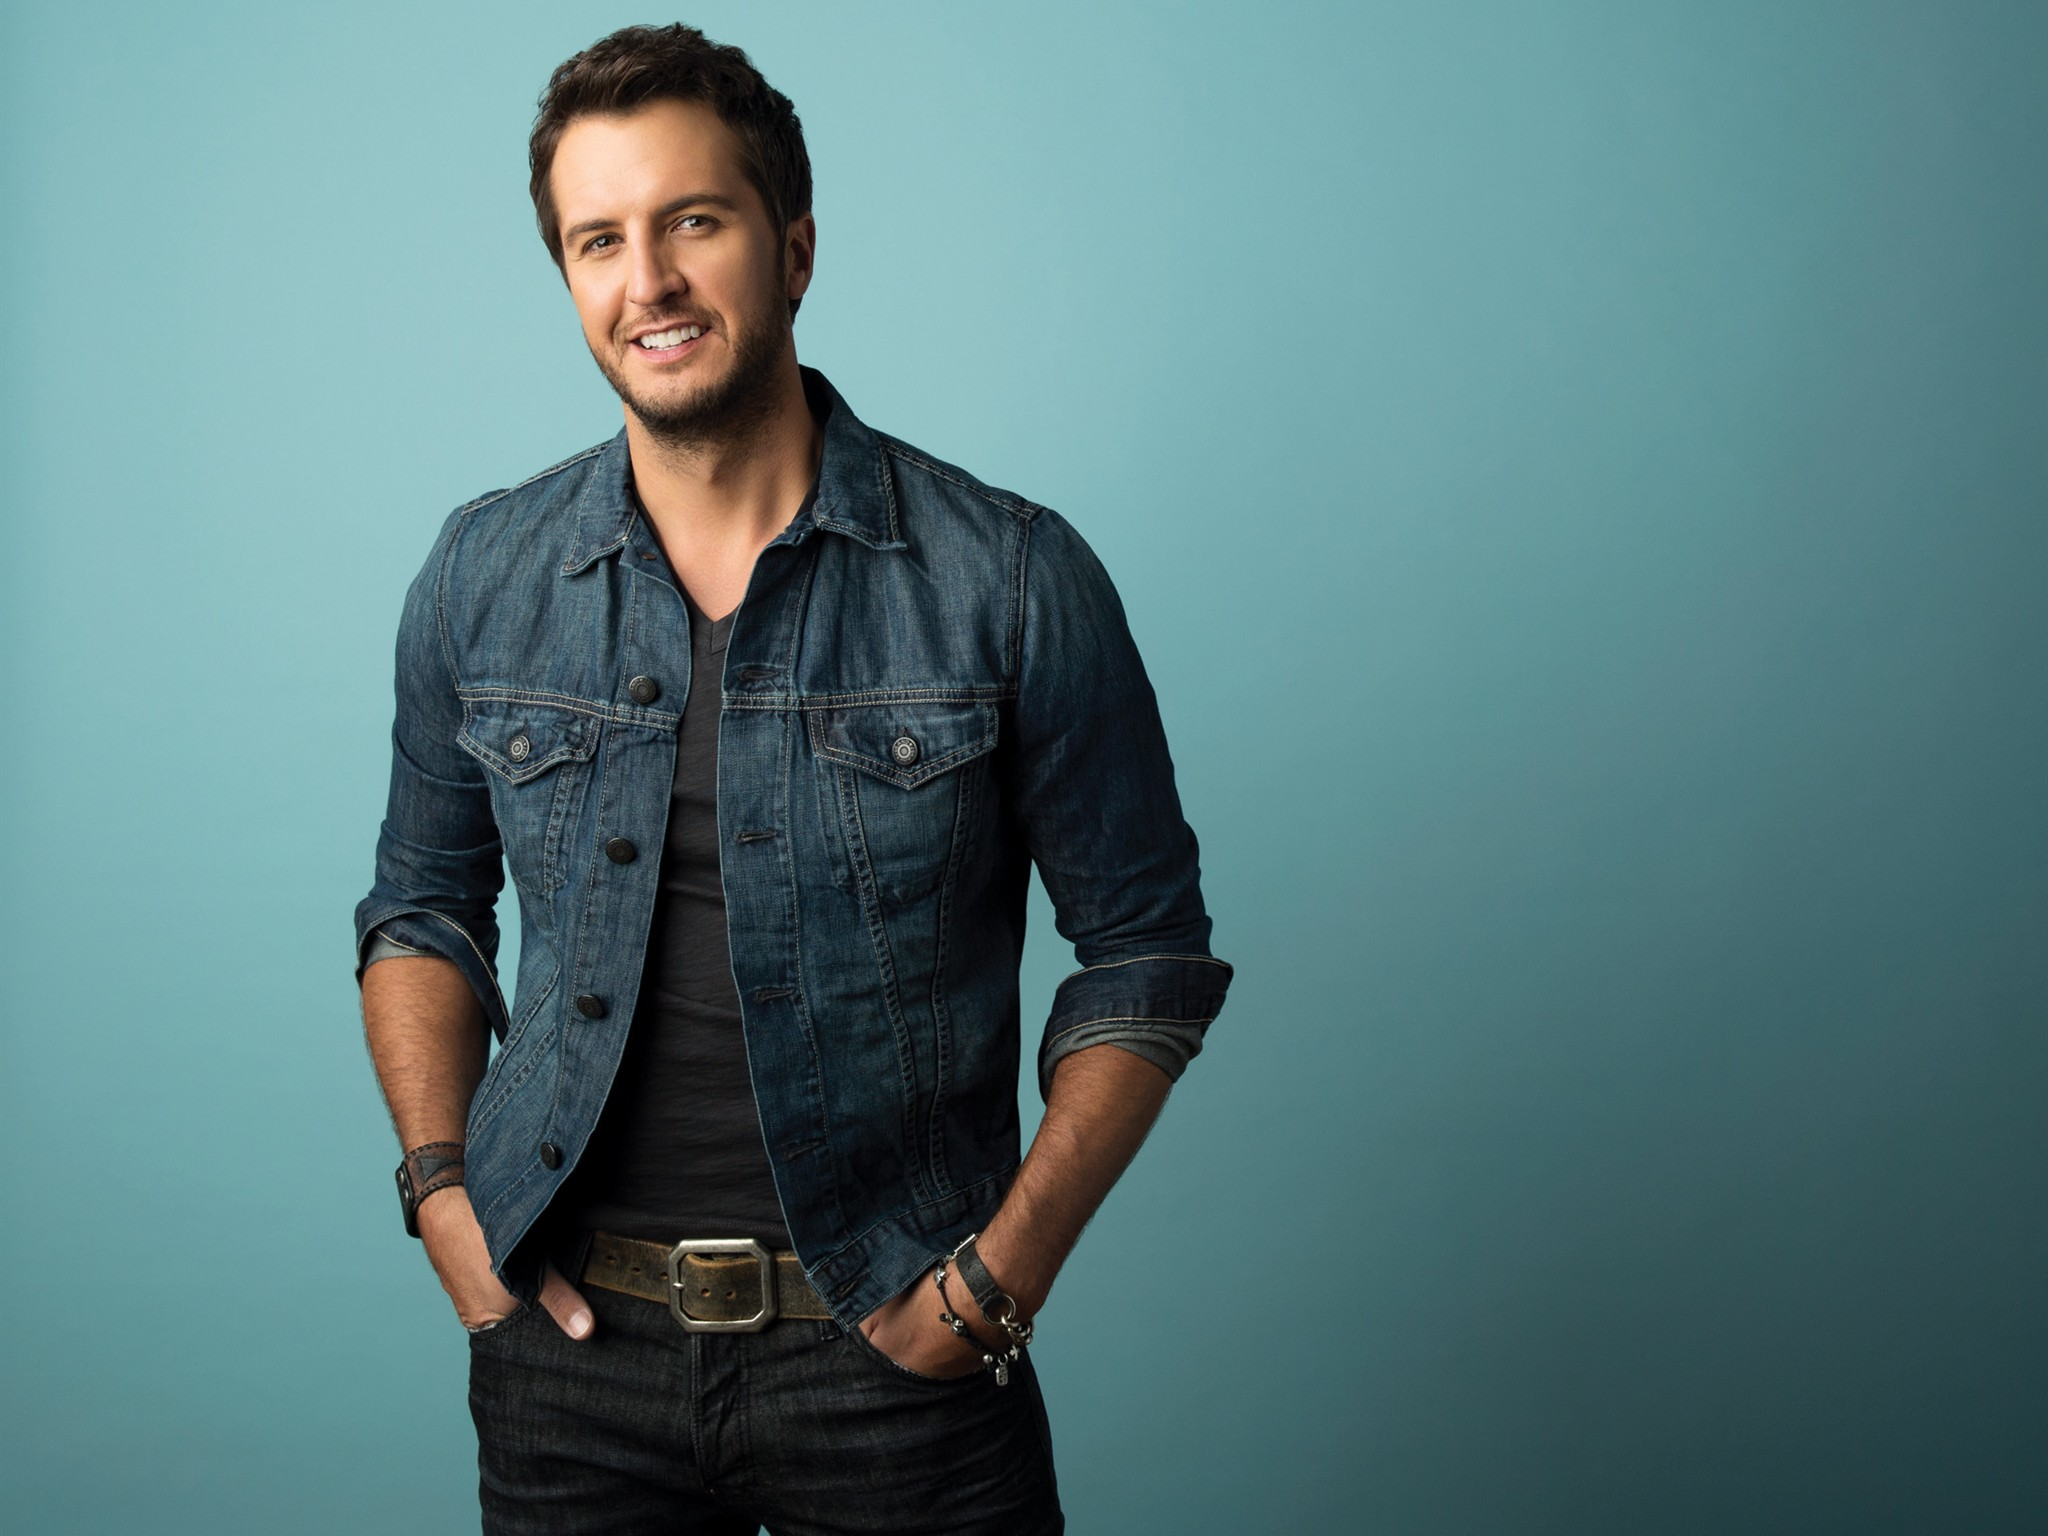 luke bryan computer wallpaper 53672